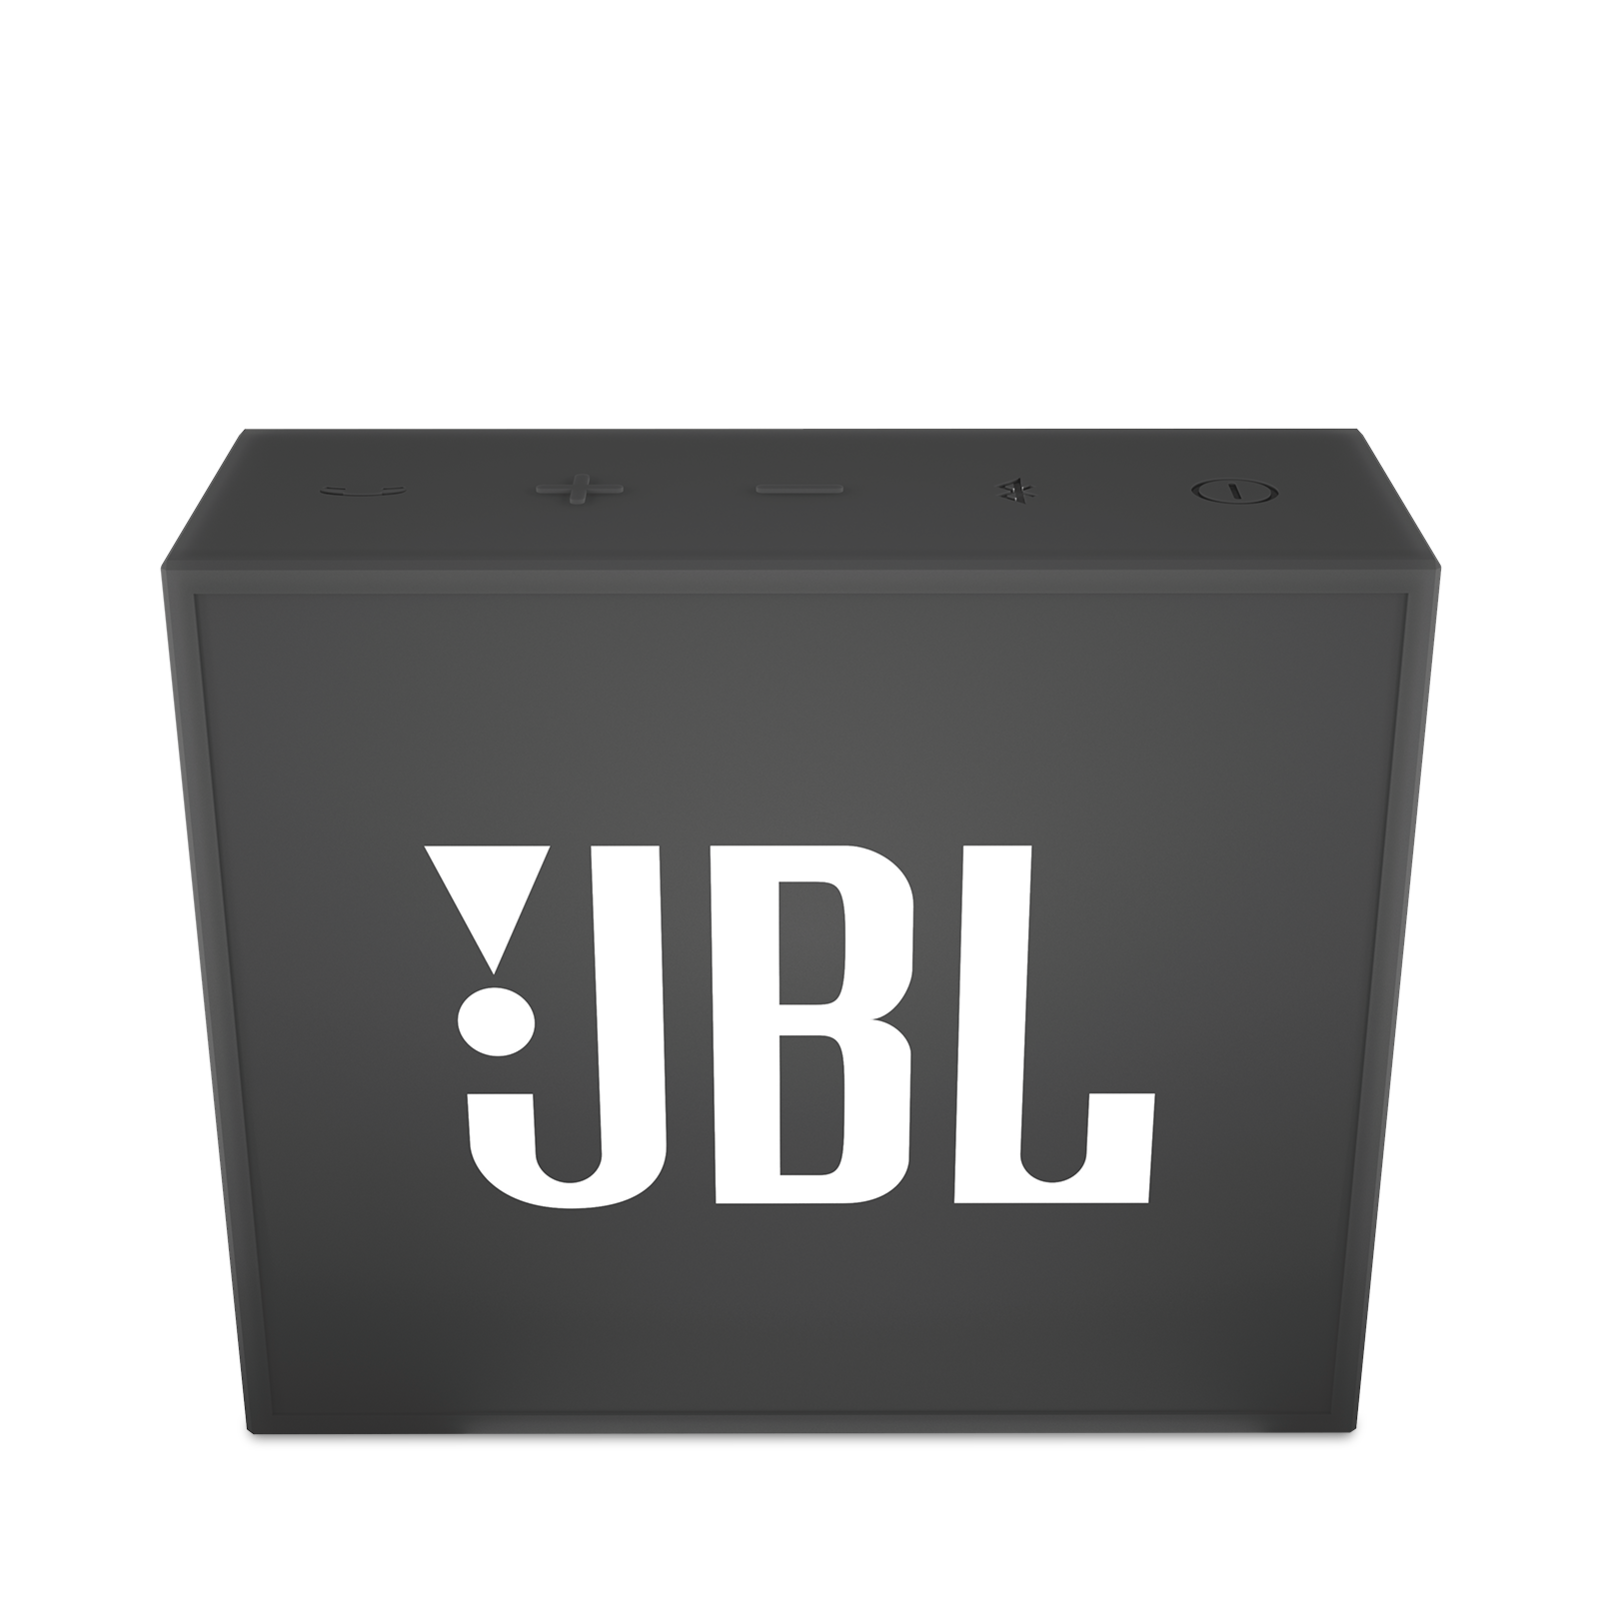 Jbl Go Portable Mini Bluetooth Speaker Harman Kardon Play Plus Pay Original